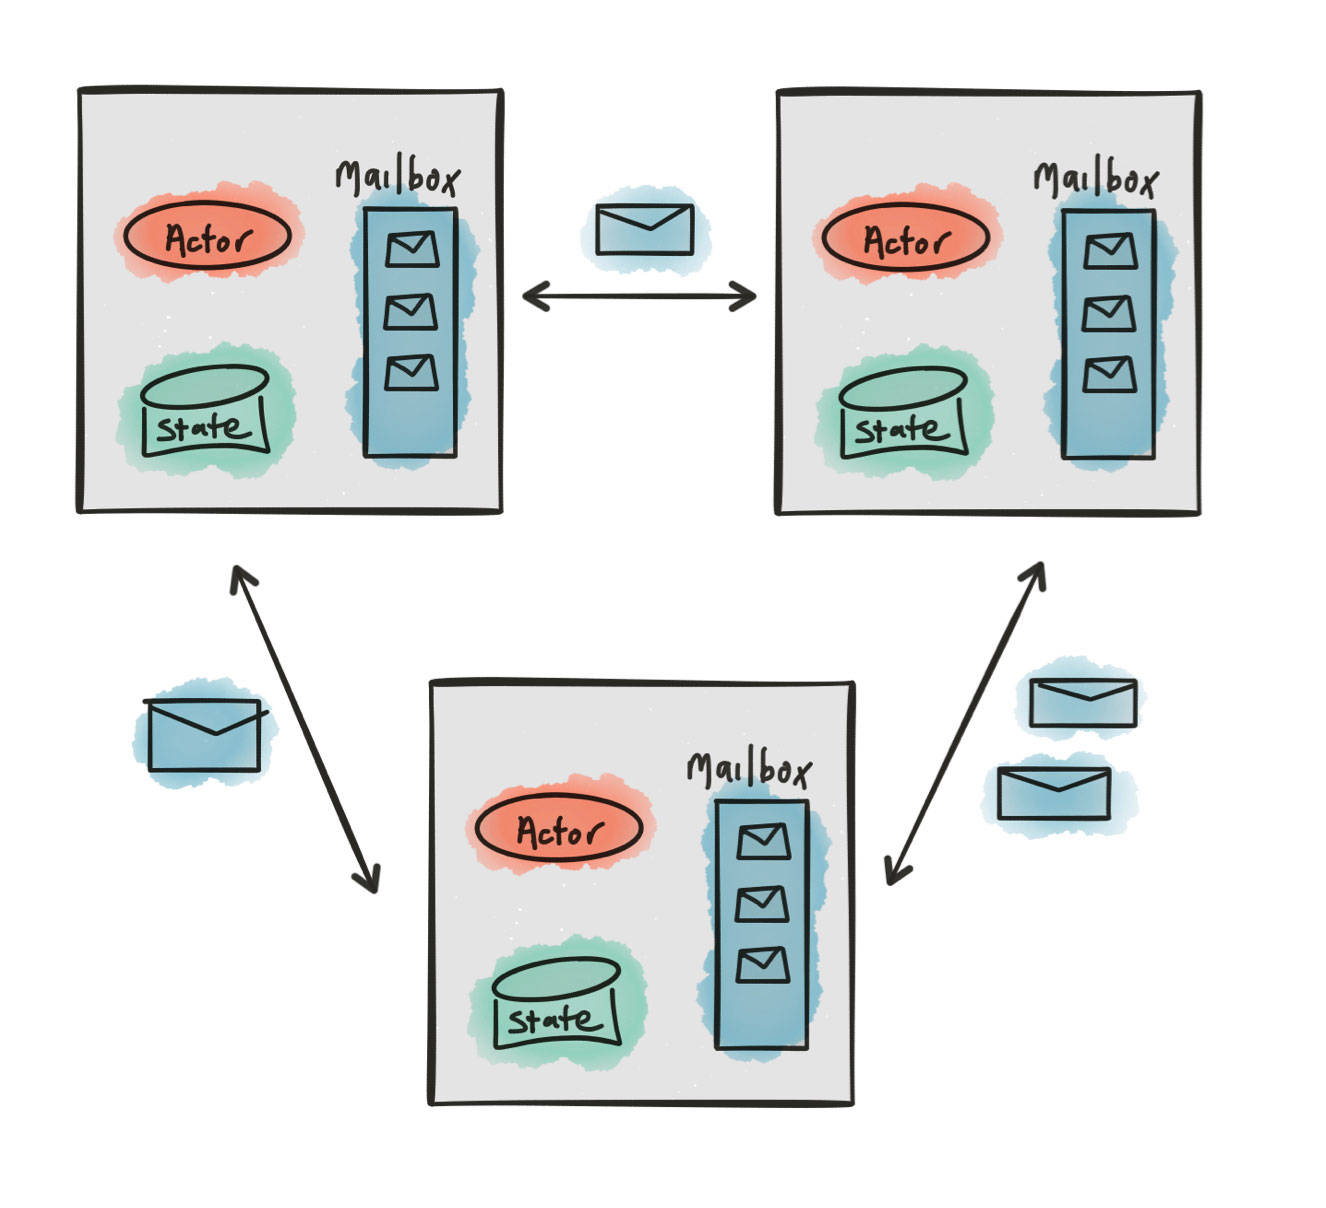 Reactive in practice: Concurrency, parallelism, asynchrony